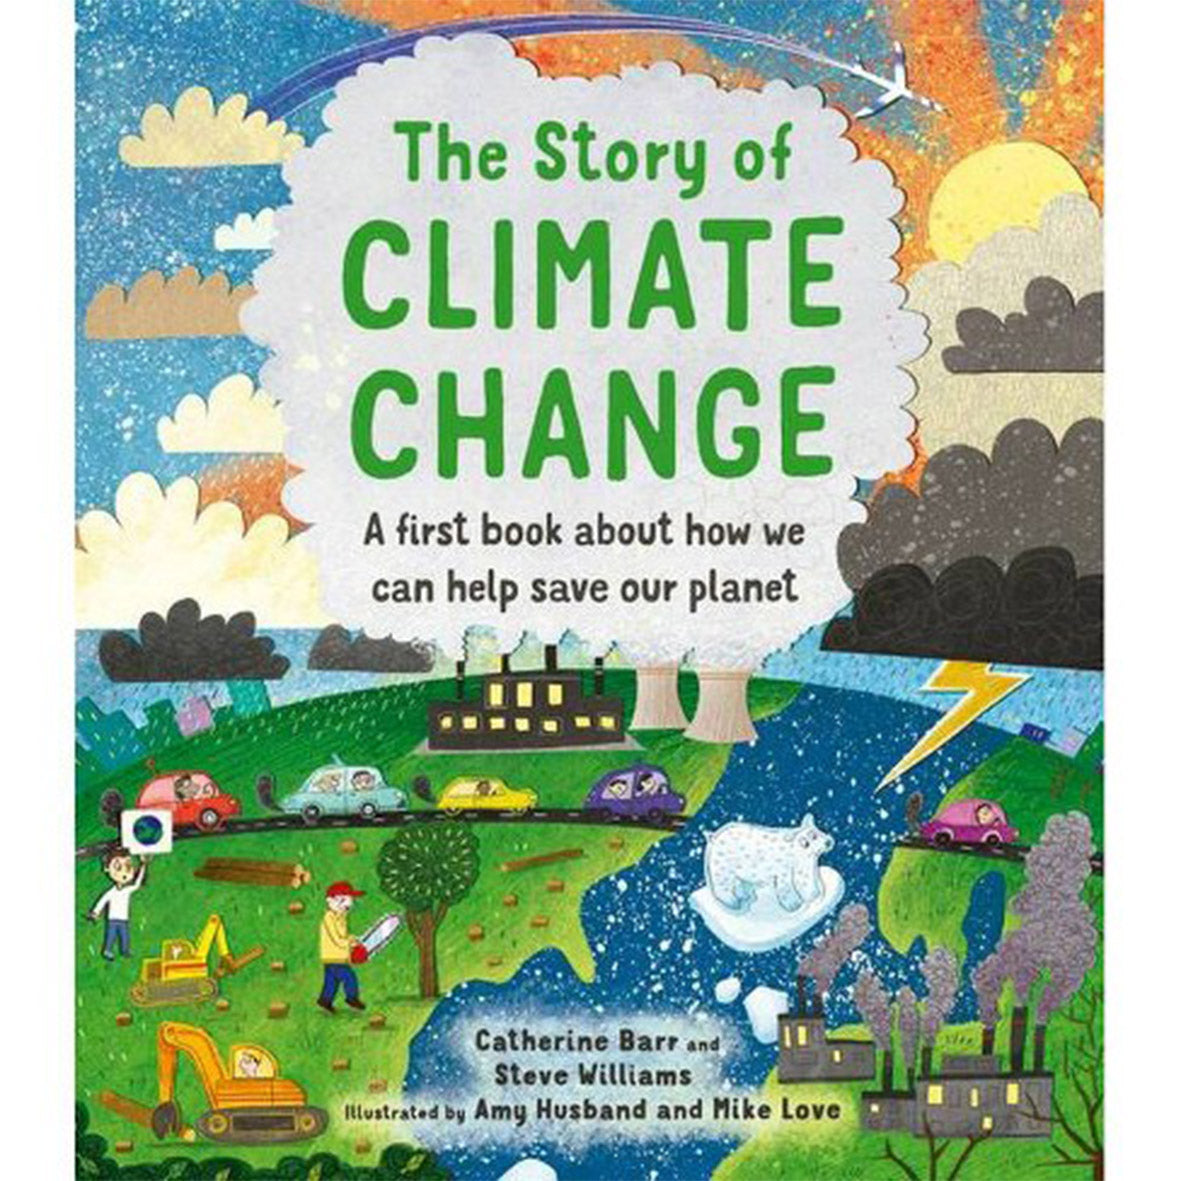 The Story of Climate Change   Catherine Barr - Playdreamers